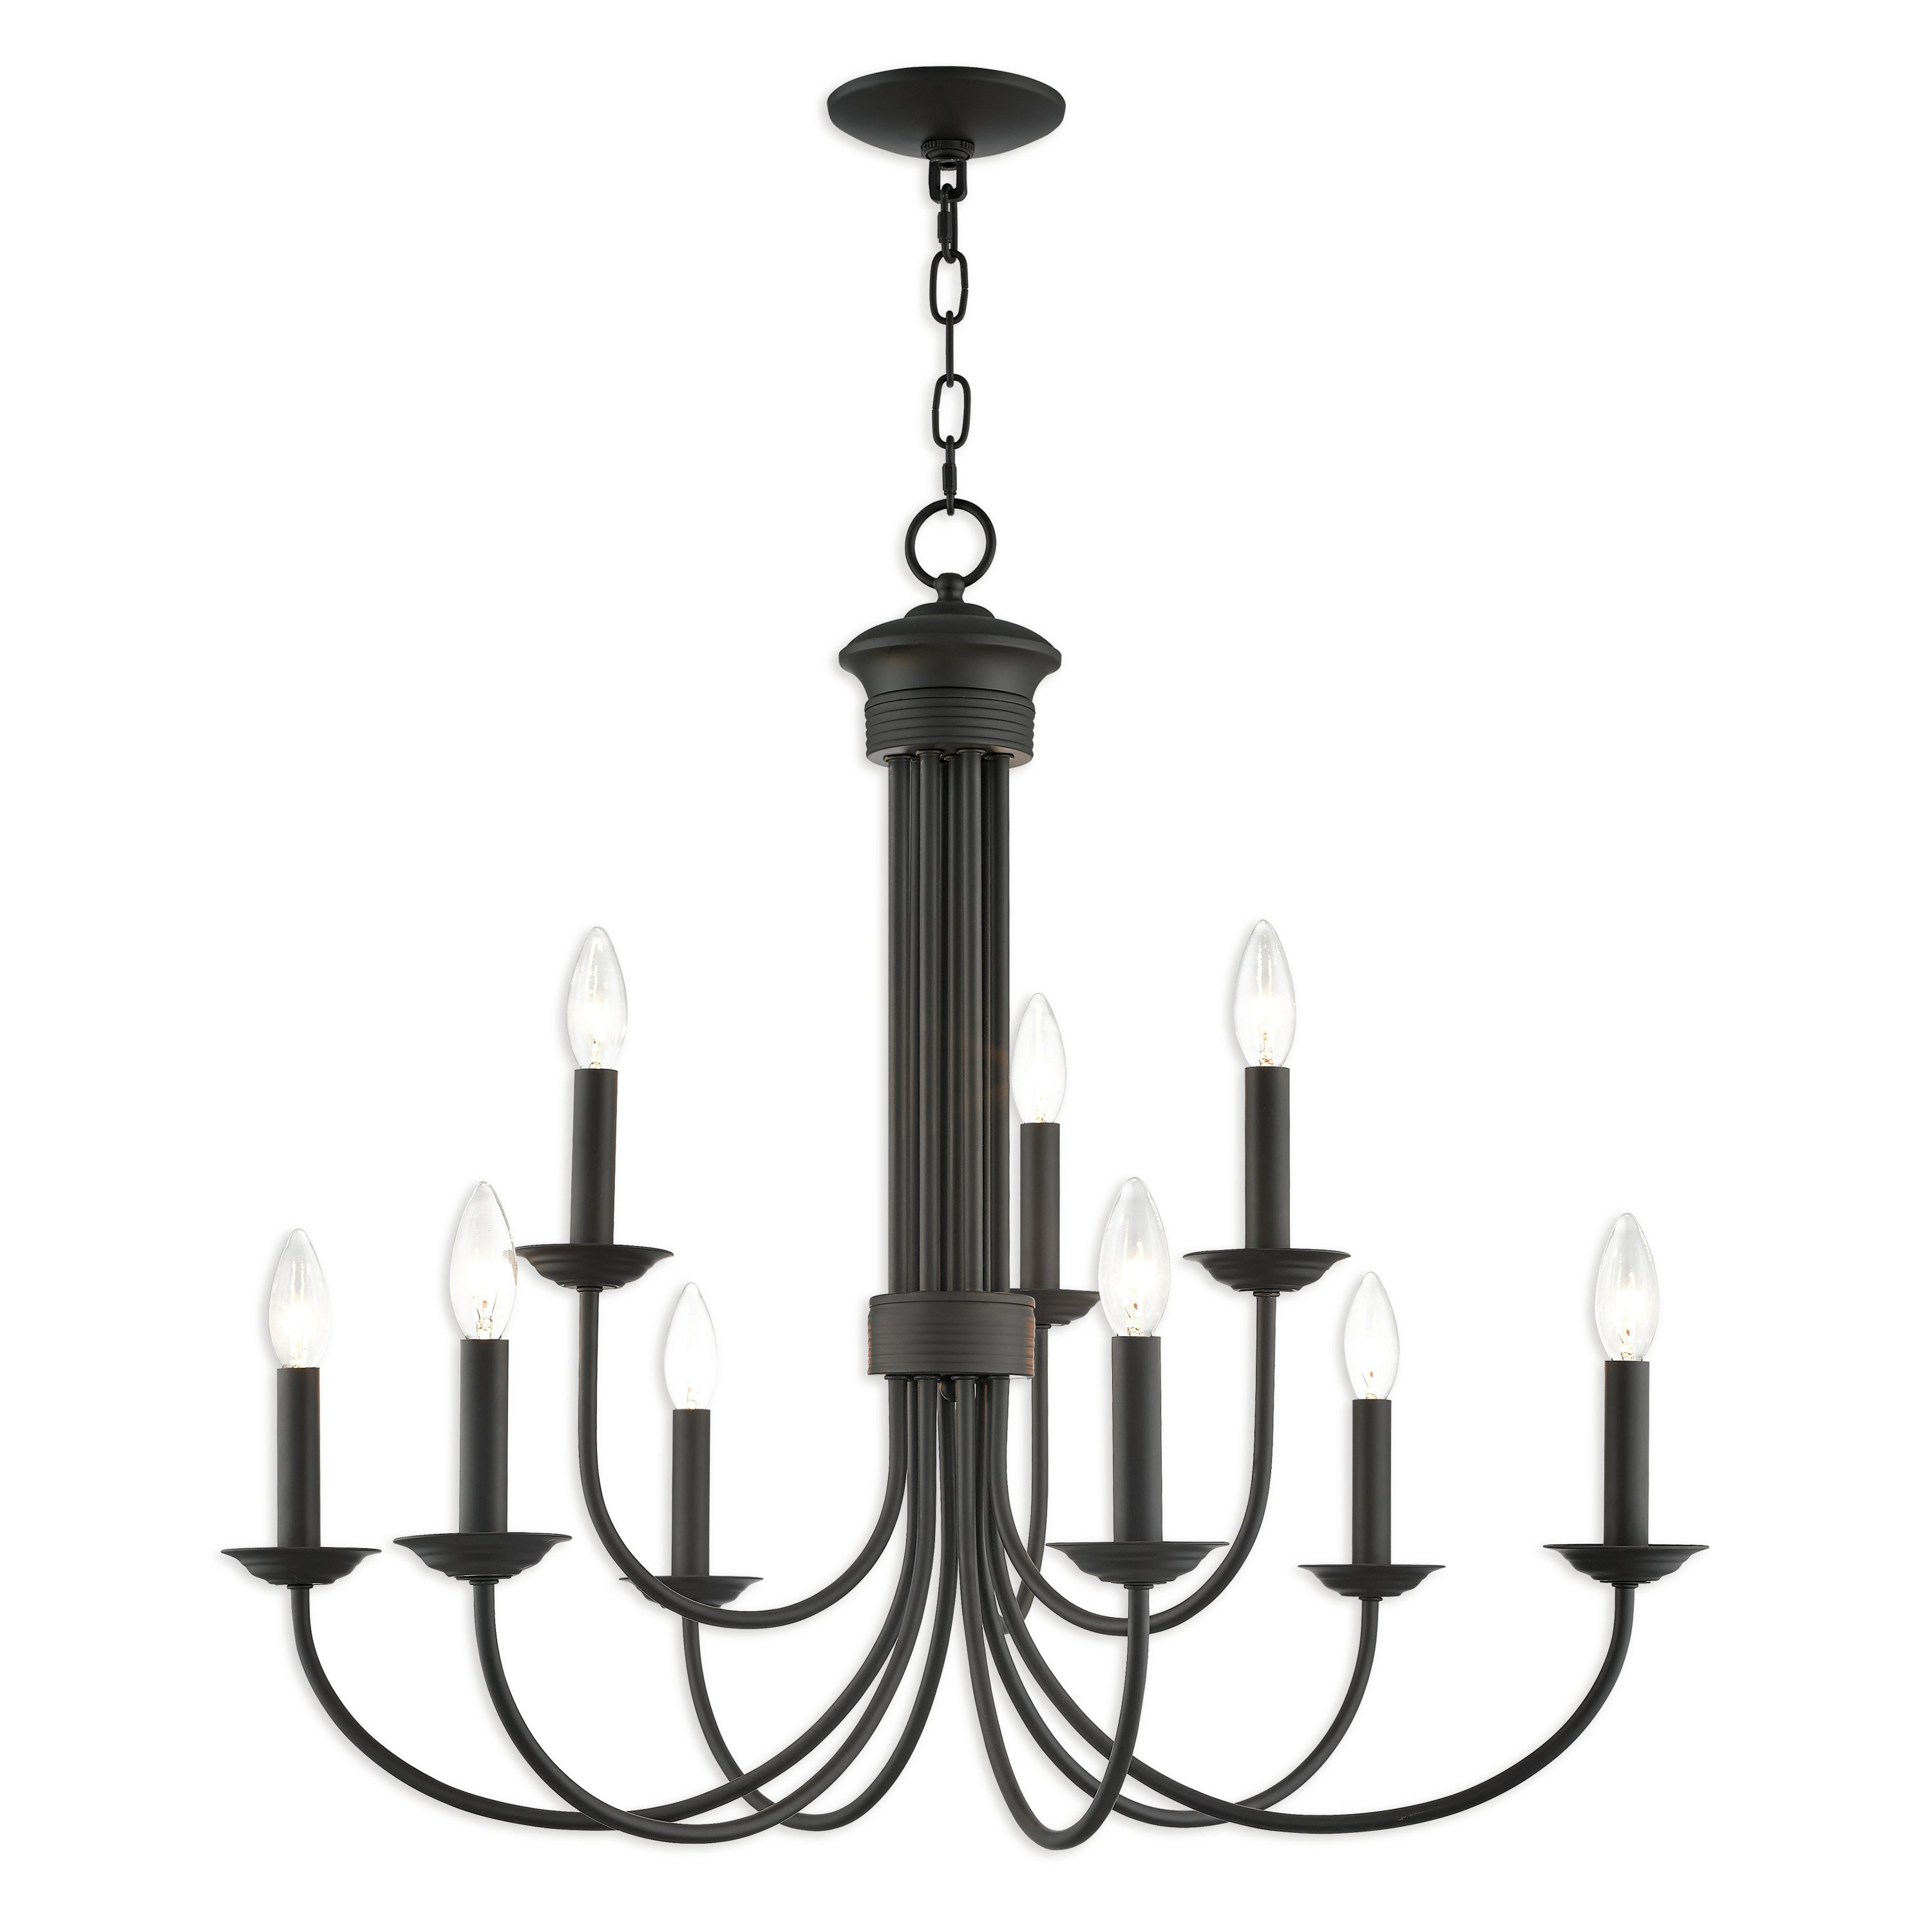 Gaines 9 Light Candle Style Chandeliers In Trendy Carruthers 9 Light Candle Style Chandelier (View 8 of 25)